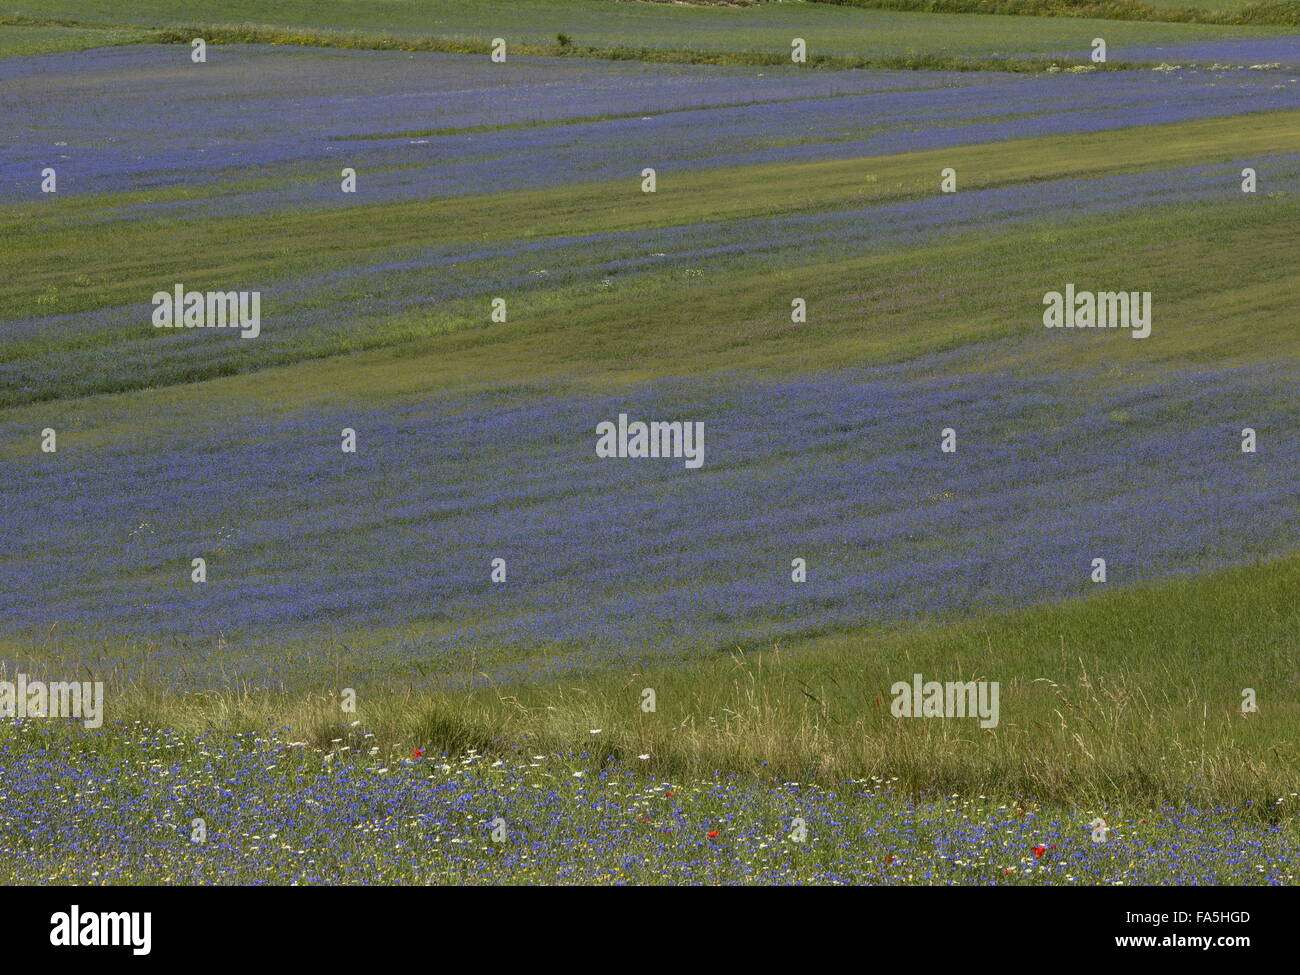 Arable fields with cornflowers in Monti Sibillini National Park, Umbria, Italy Stock Photo